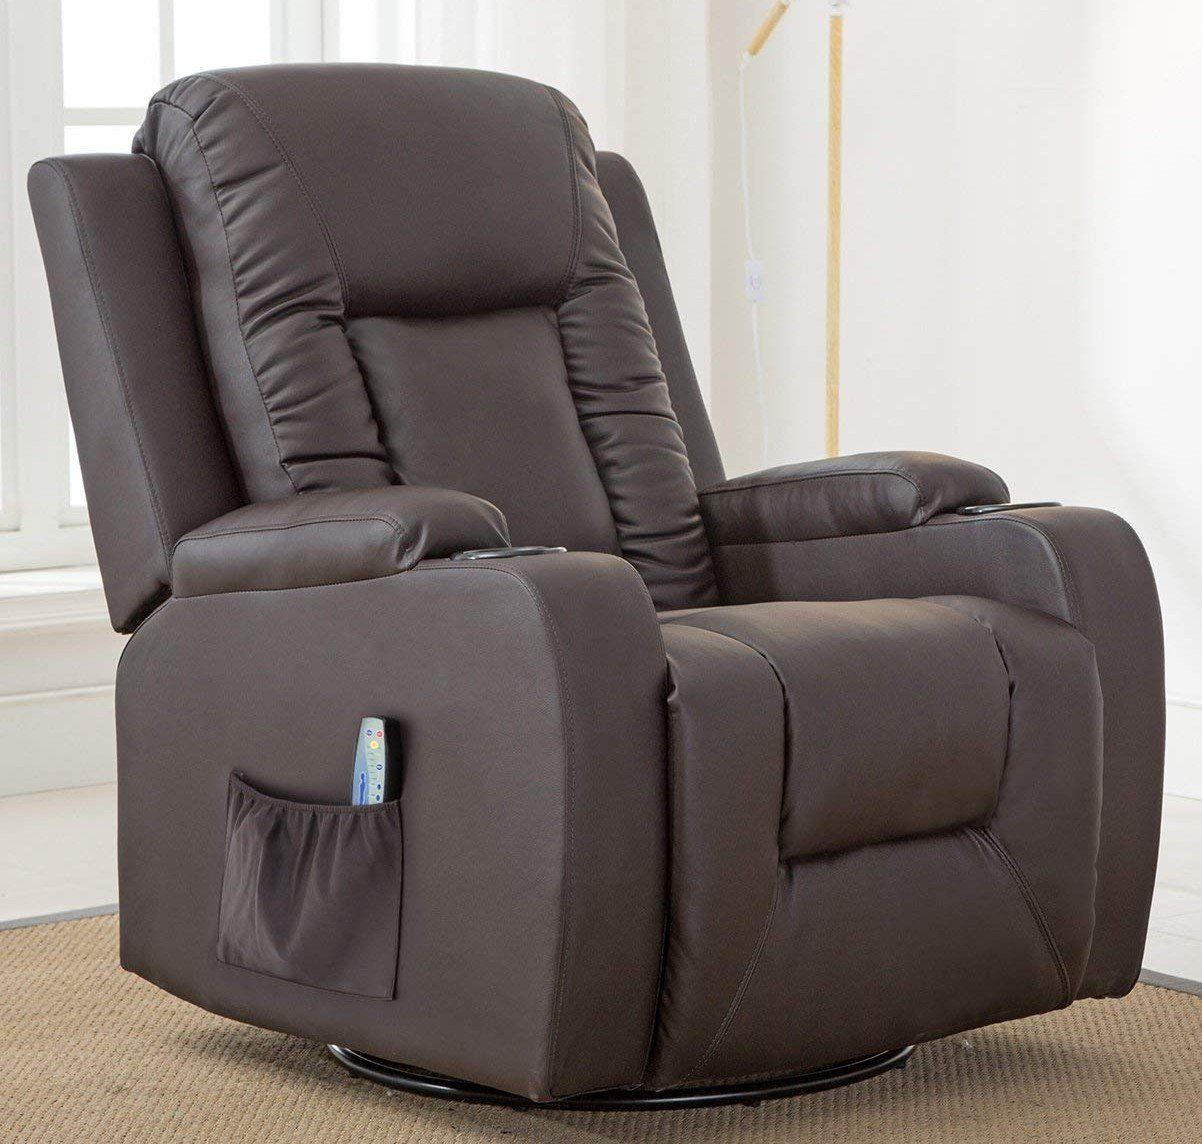 comhoma leather recliner chair modern rocker with heated target waldo accent table massage ergonomic lounge degree swivel single sofa seat drink holders living room pub set drawer